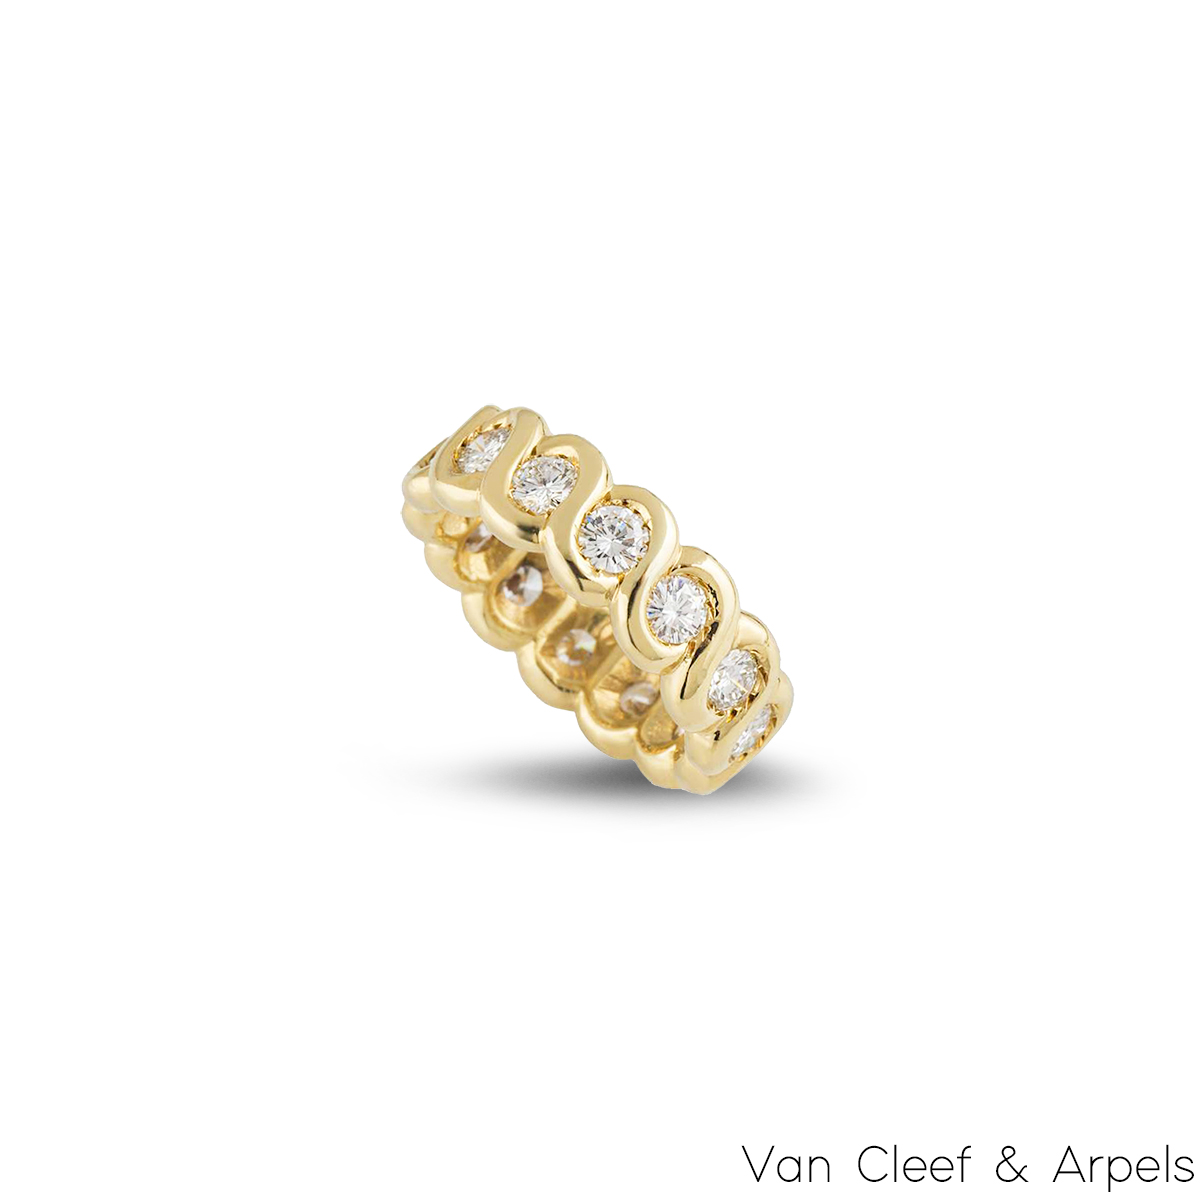 Van Cleef & Arpels Diamond Eternity Ring 1.40ct G/VS